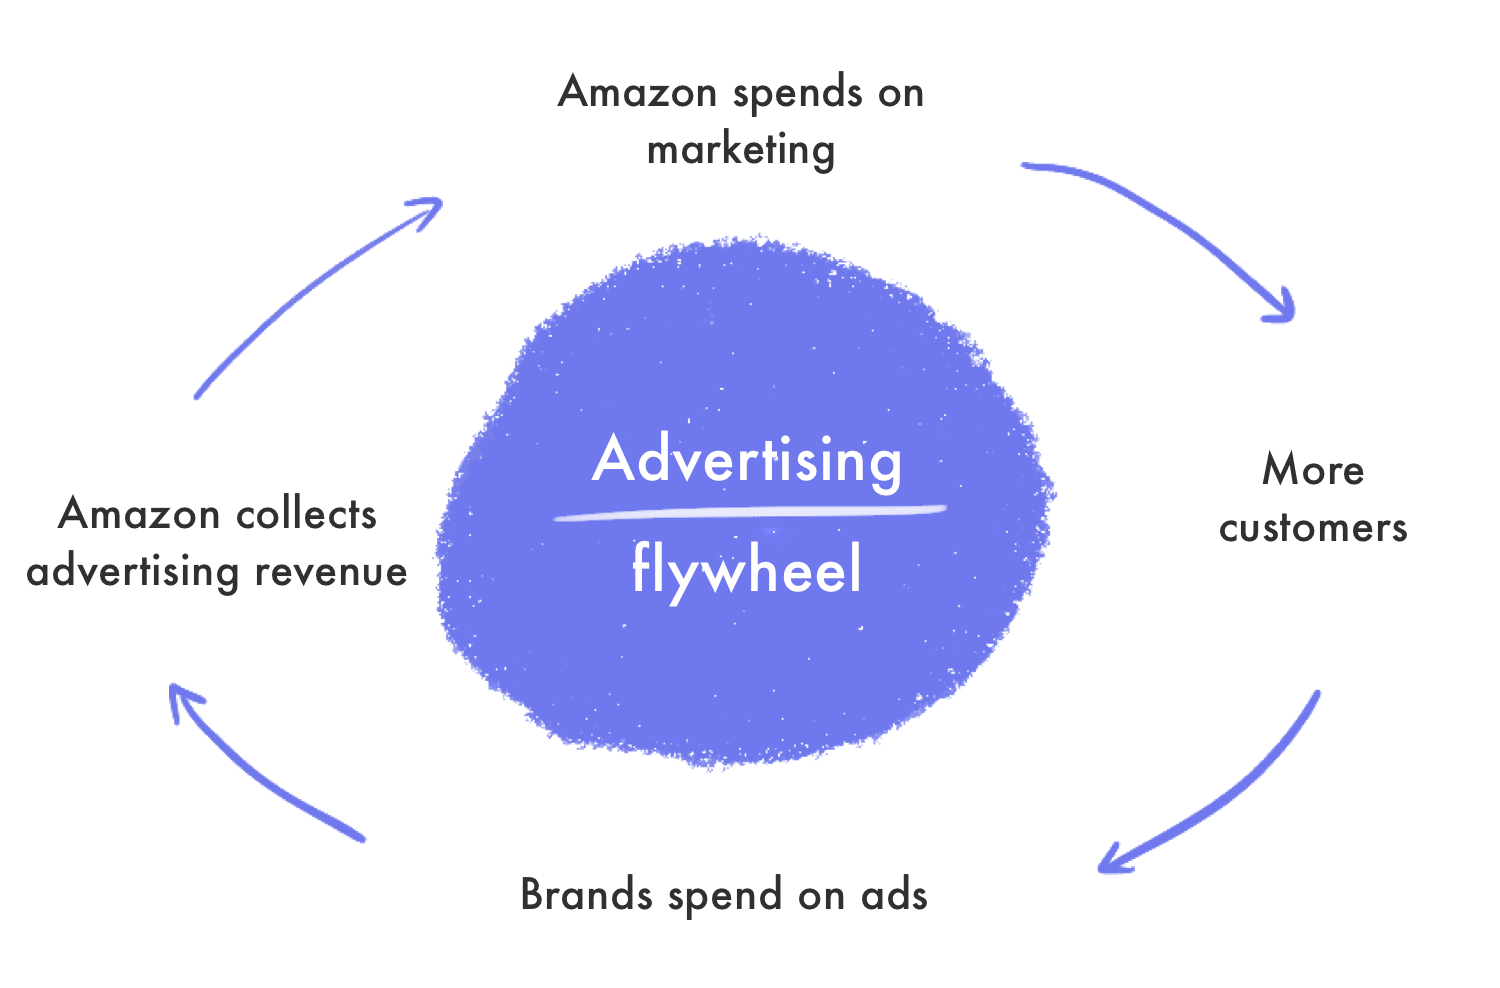 Amazon Advertising Flywheel